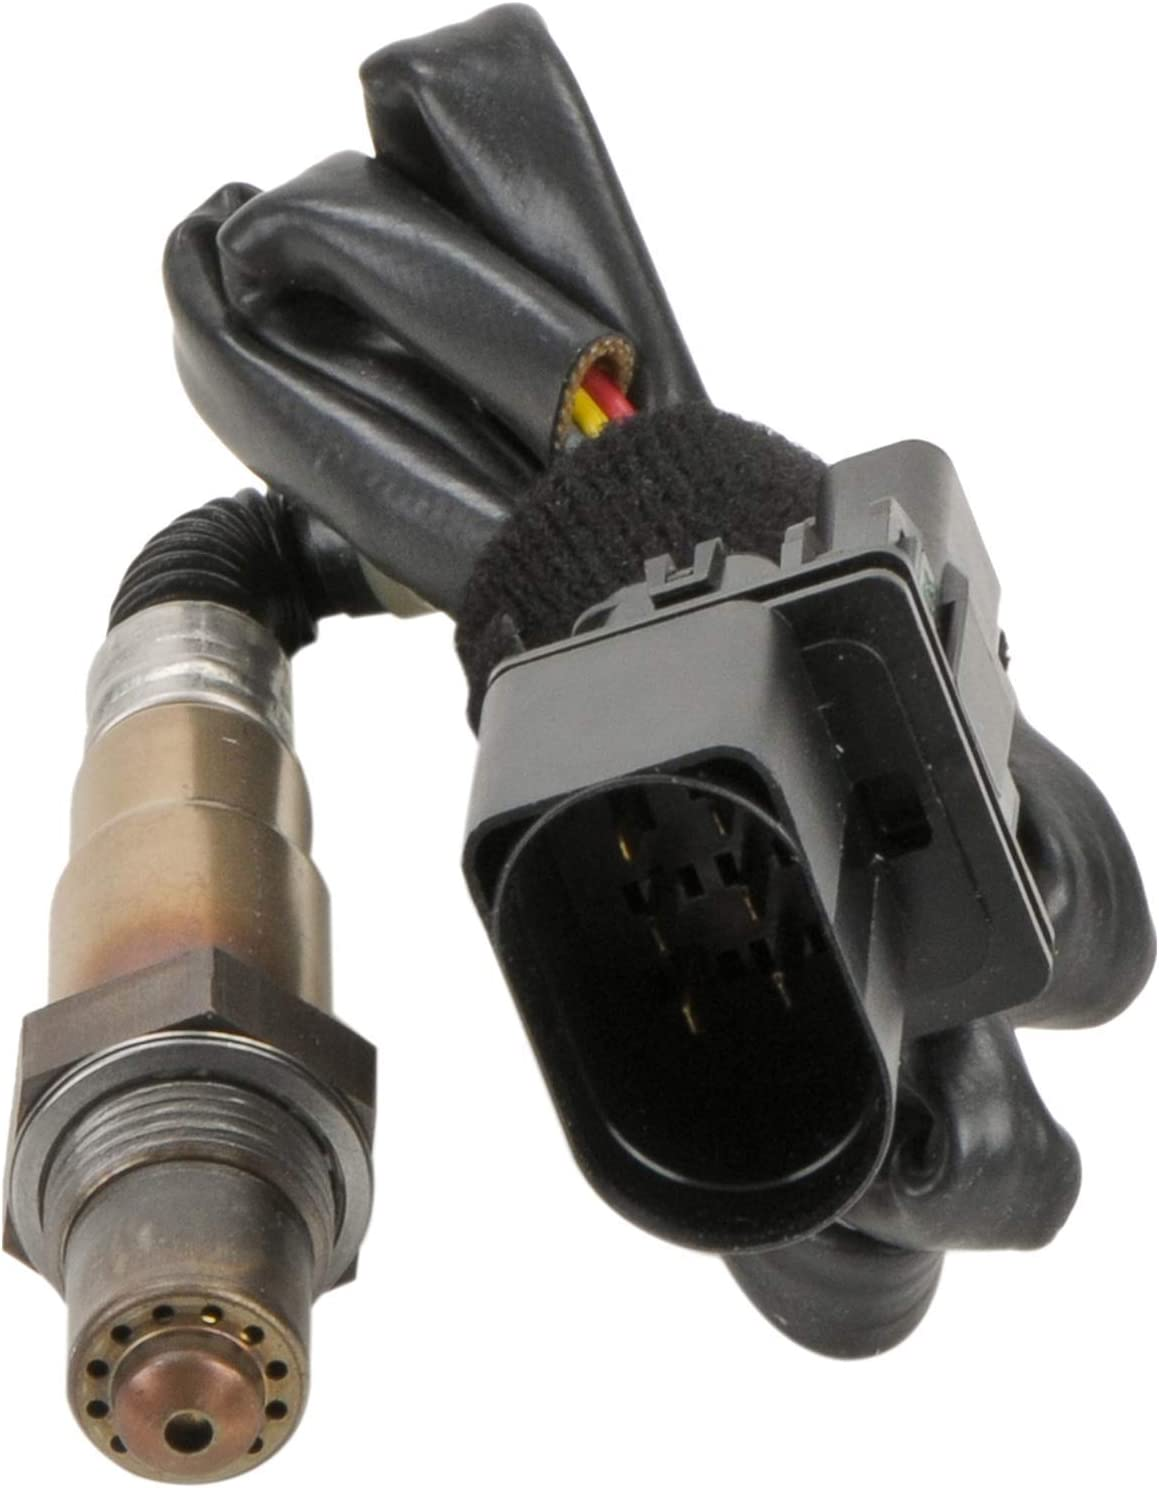 Bosch 17174 Oxygen Sensor, Original Equipment (Porsche)